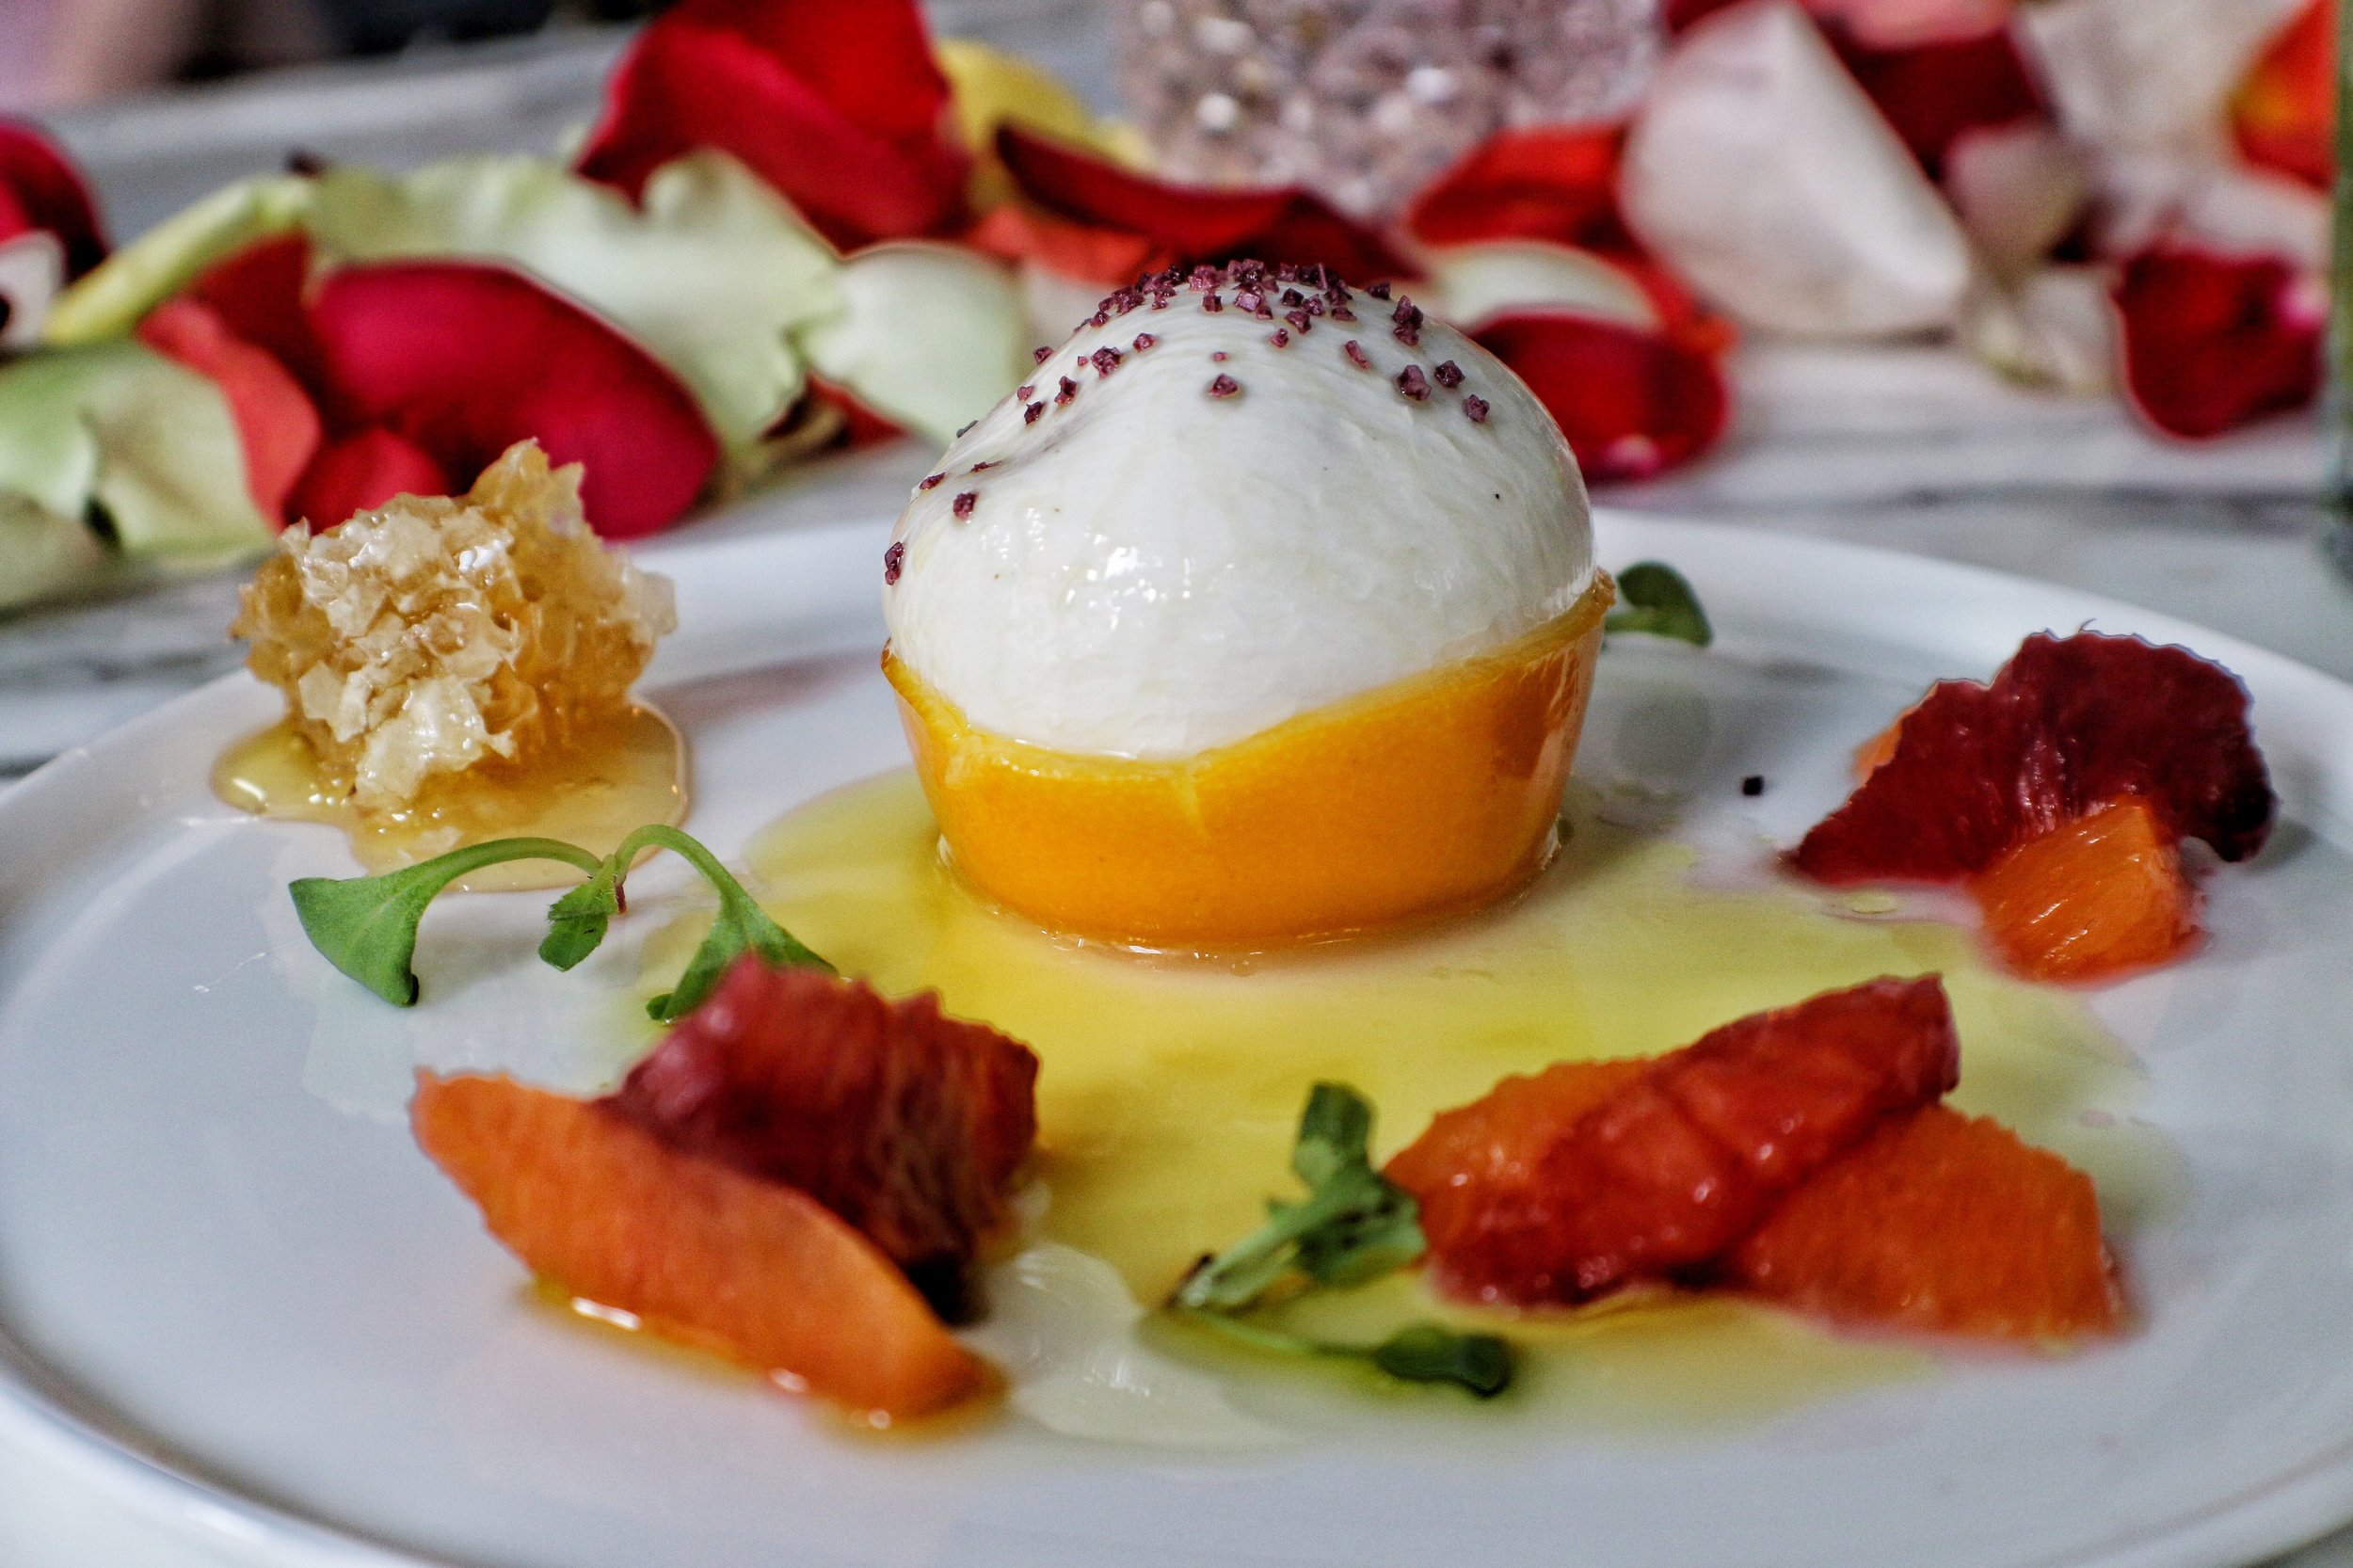 Burrata   honey comb / candied meyer lemon / caracara orange / blood orange